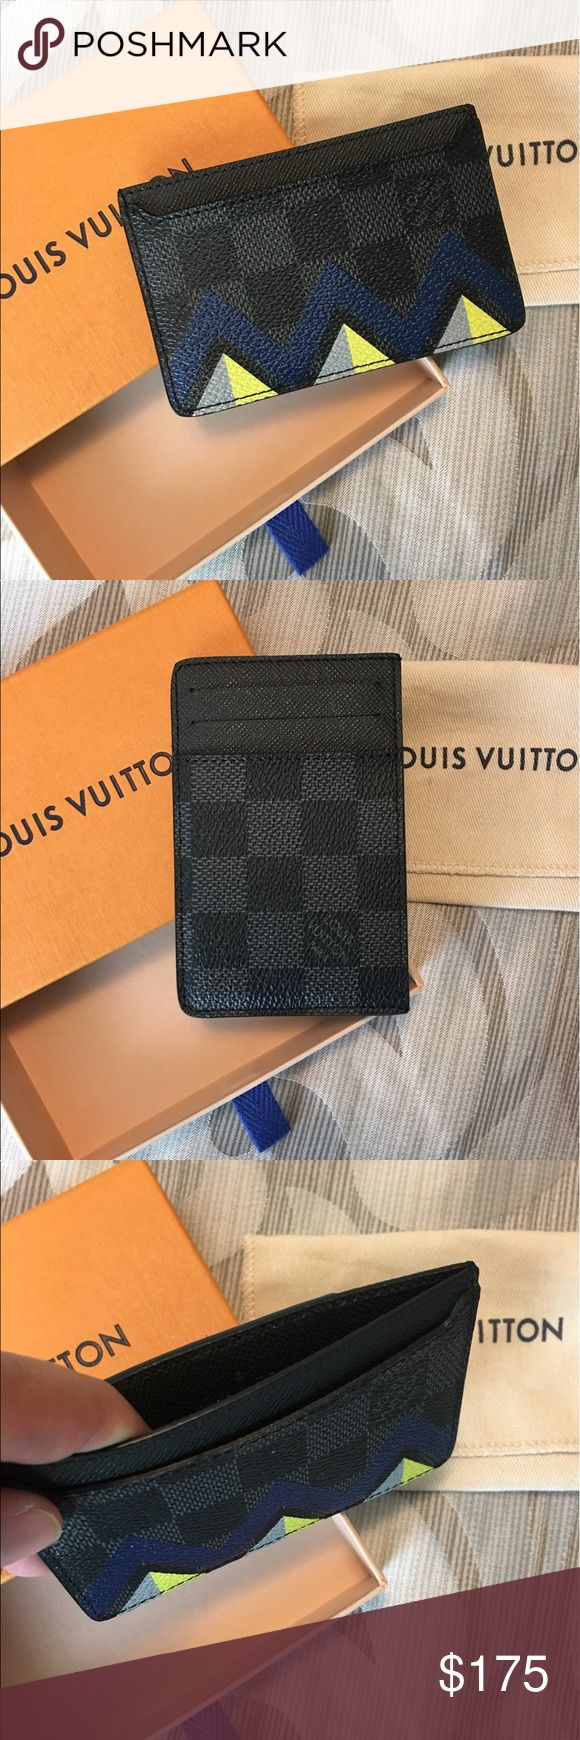 Louis Vuitton Karakoram Graphite Card Holder Men's Louis Vuitton Card Holder. In Graphite color with limited Karakoram design in front. Was for my husband but he currently already has a wallet. Original price was $335 BRAND NEW! NEVER USED!! Louis Vuitton Bags Wallets